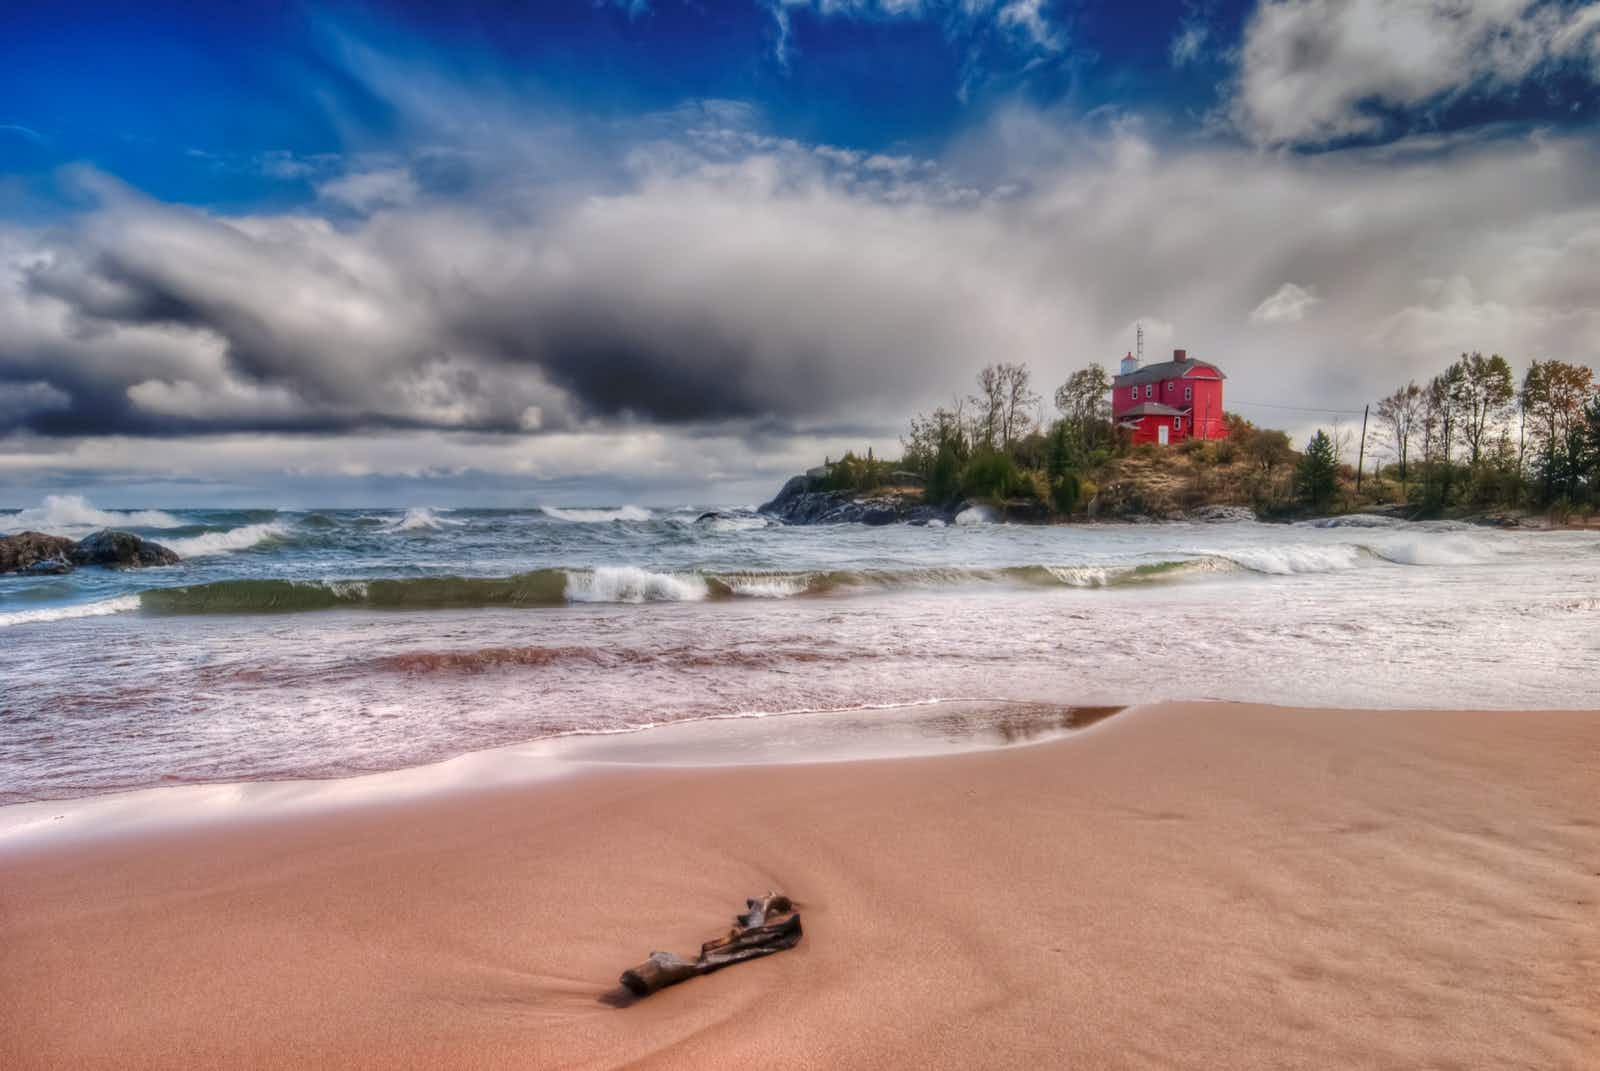 The Coast Guard Lower Harbor Lighthouse stands on an island just off the shores of Marquette, on Lake Superior. Marquette is a hub of adventure travel on Michigan's Upper Peninsula.